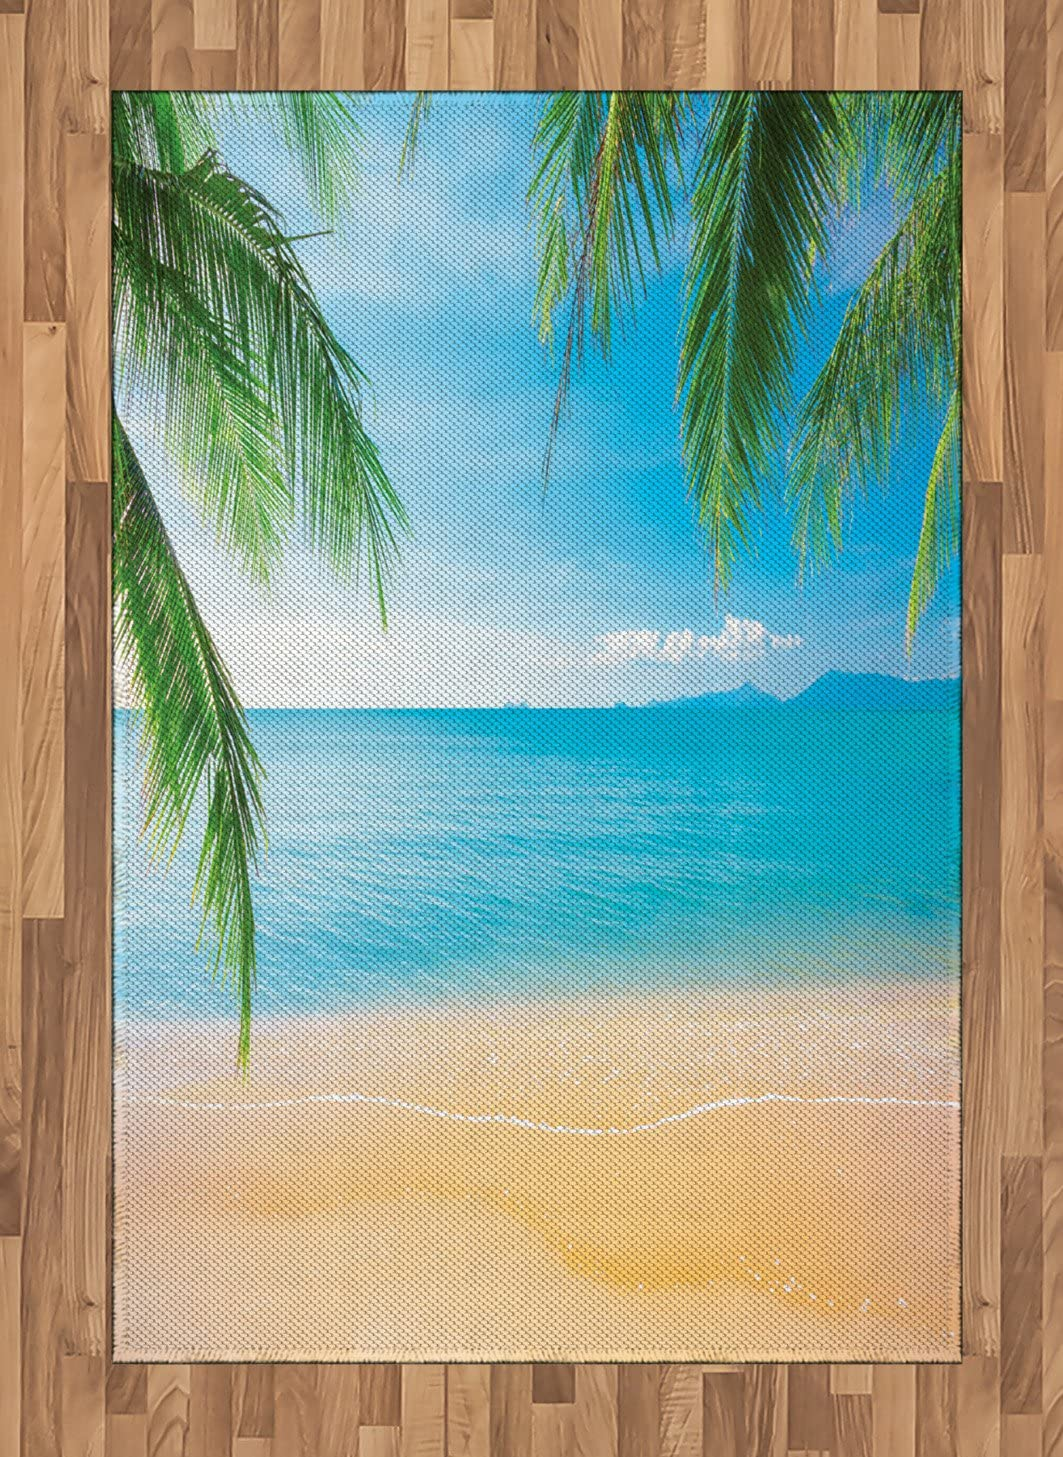 Ambesonne Beach Area Rug, Exotic Lagoon Sand Ocean Paradise Picture Thailand Nature Picture, Flat Woven Accent Rug for Living Room Bedroom Dining Room, 4' X 5.7', Sky Blue Green Sand Brown